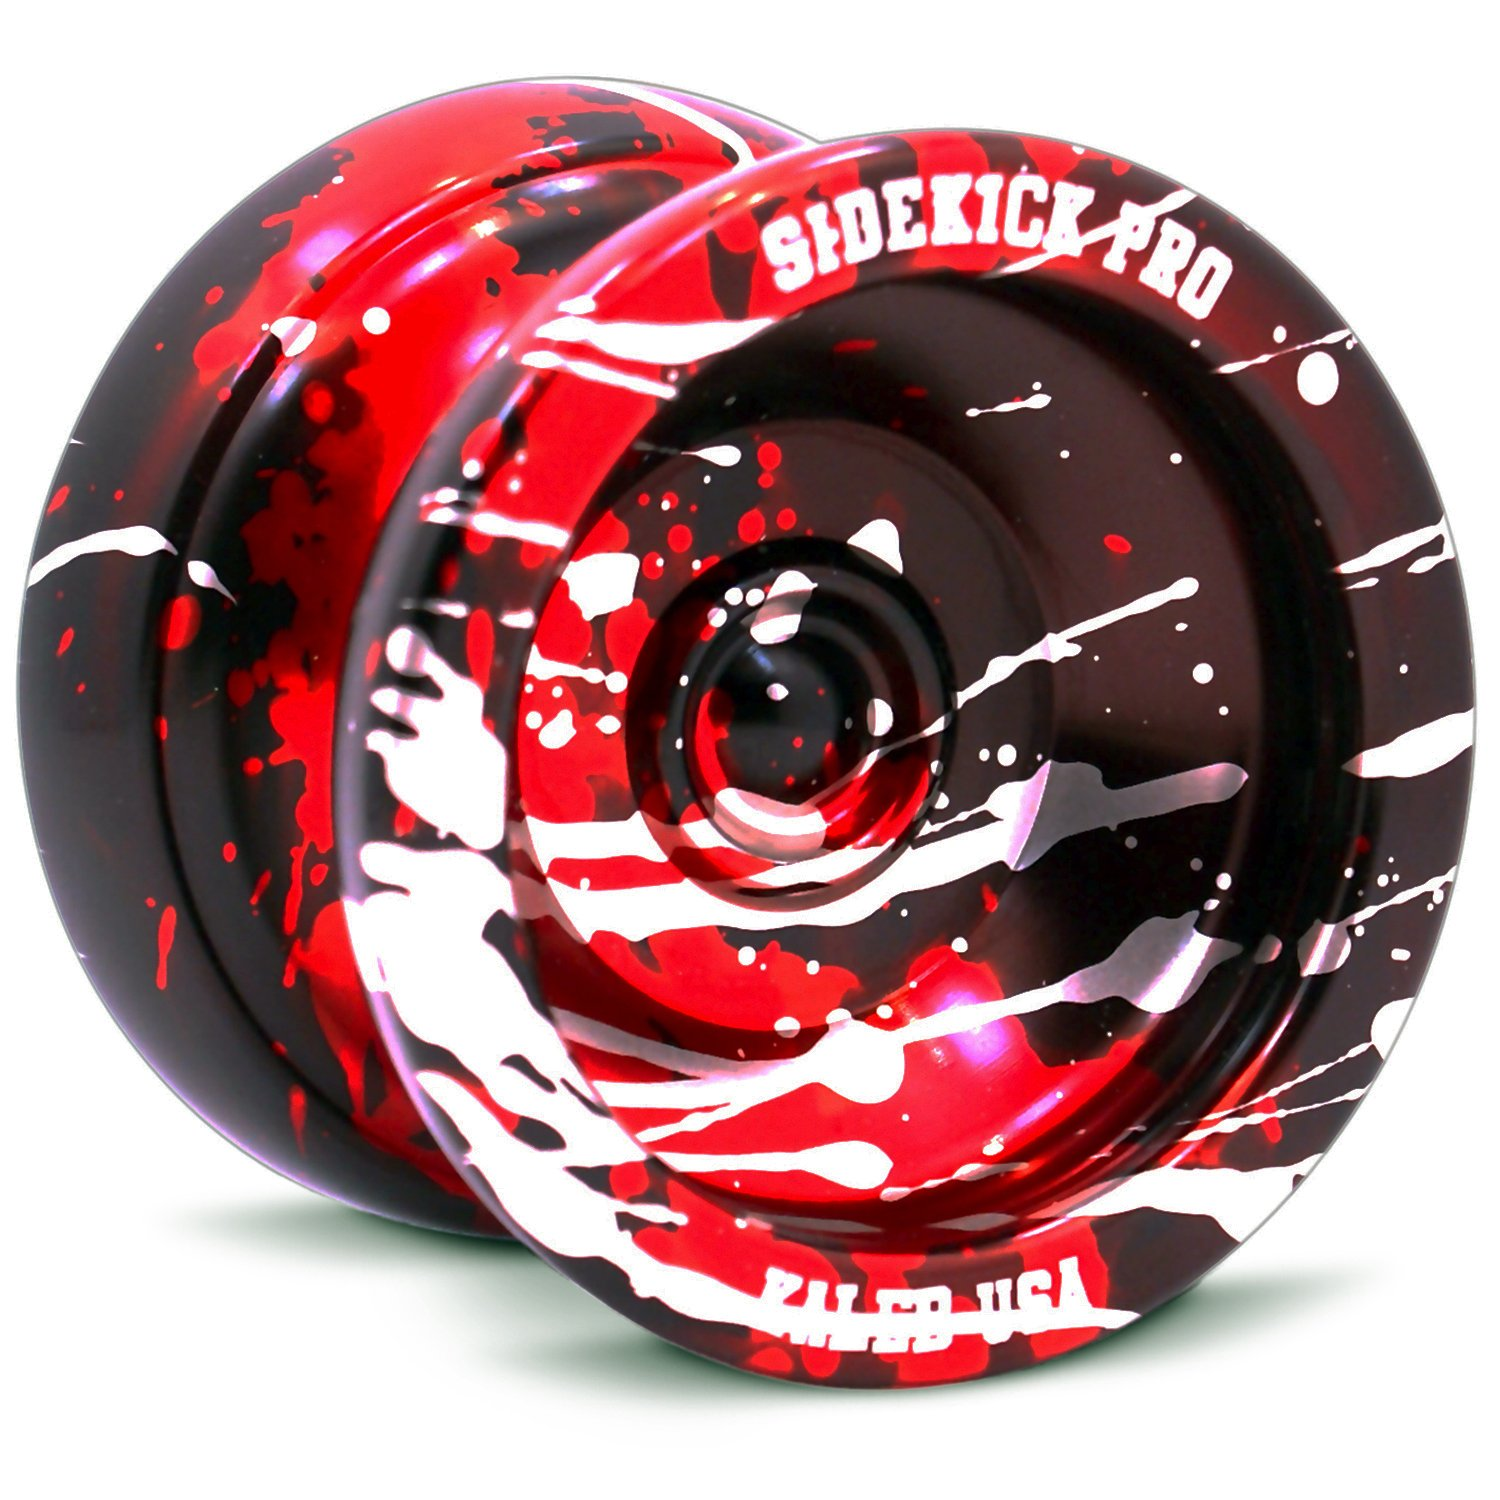 Black Red Silver Splashes Yo-Yo Professional Aluminum Sidekick Pro YoYo by Sidekick Yoyo